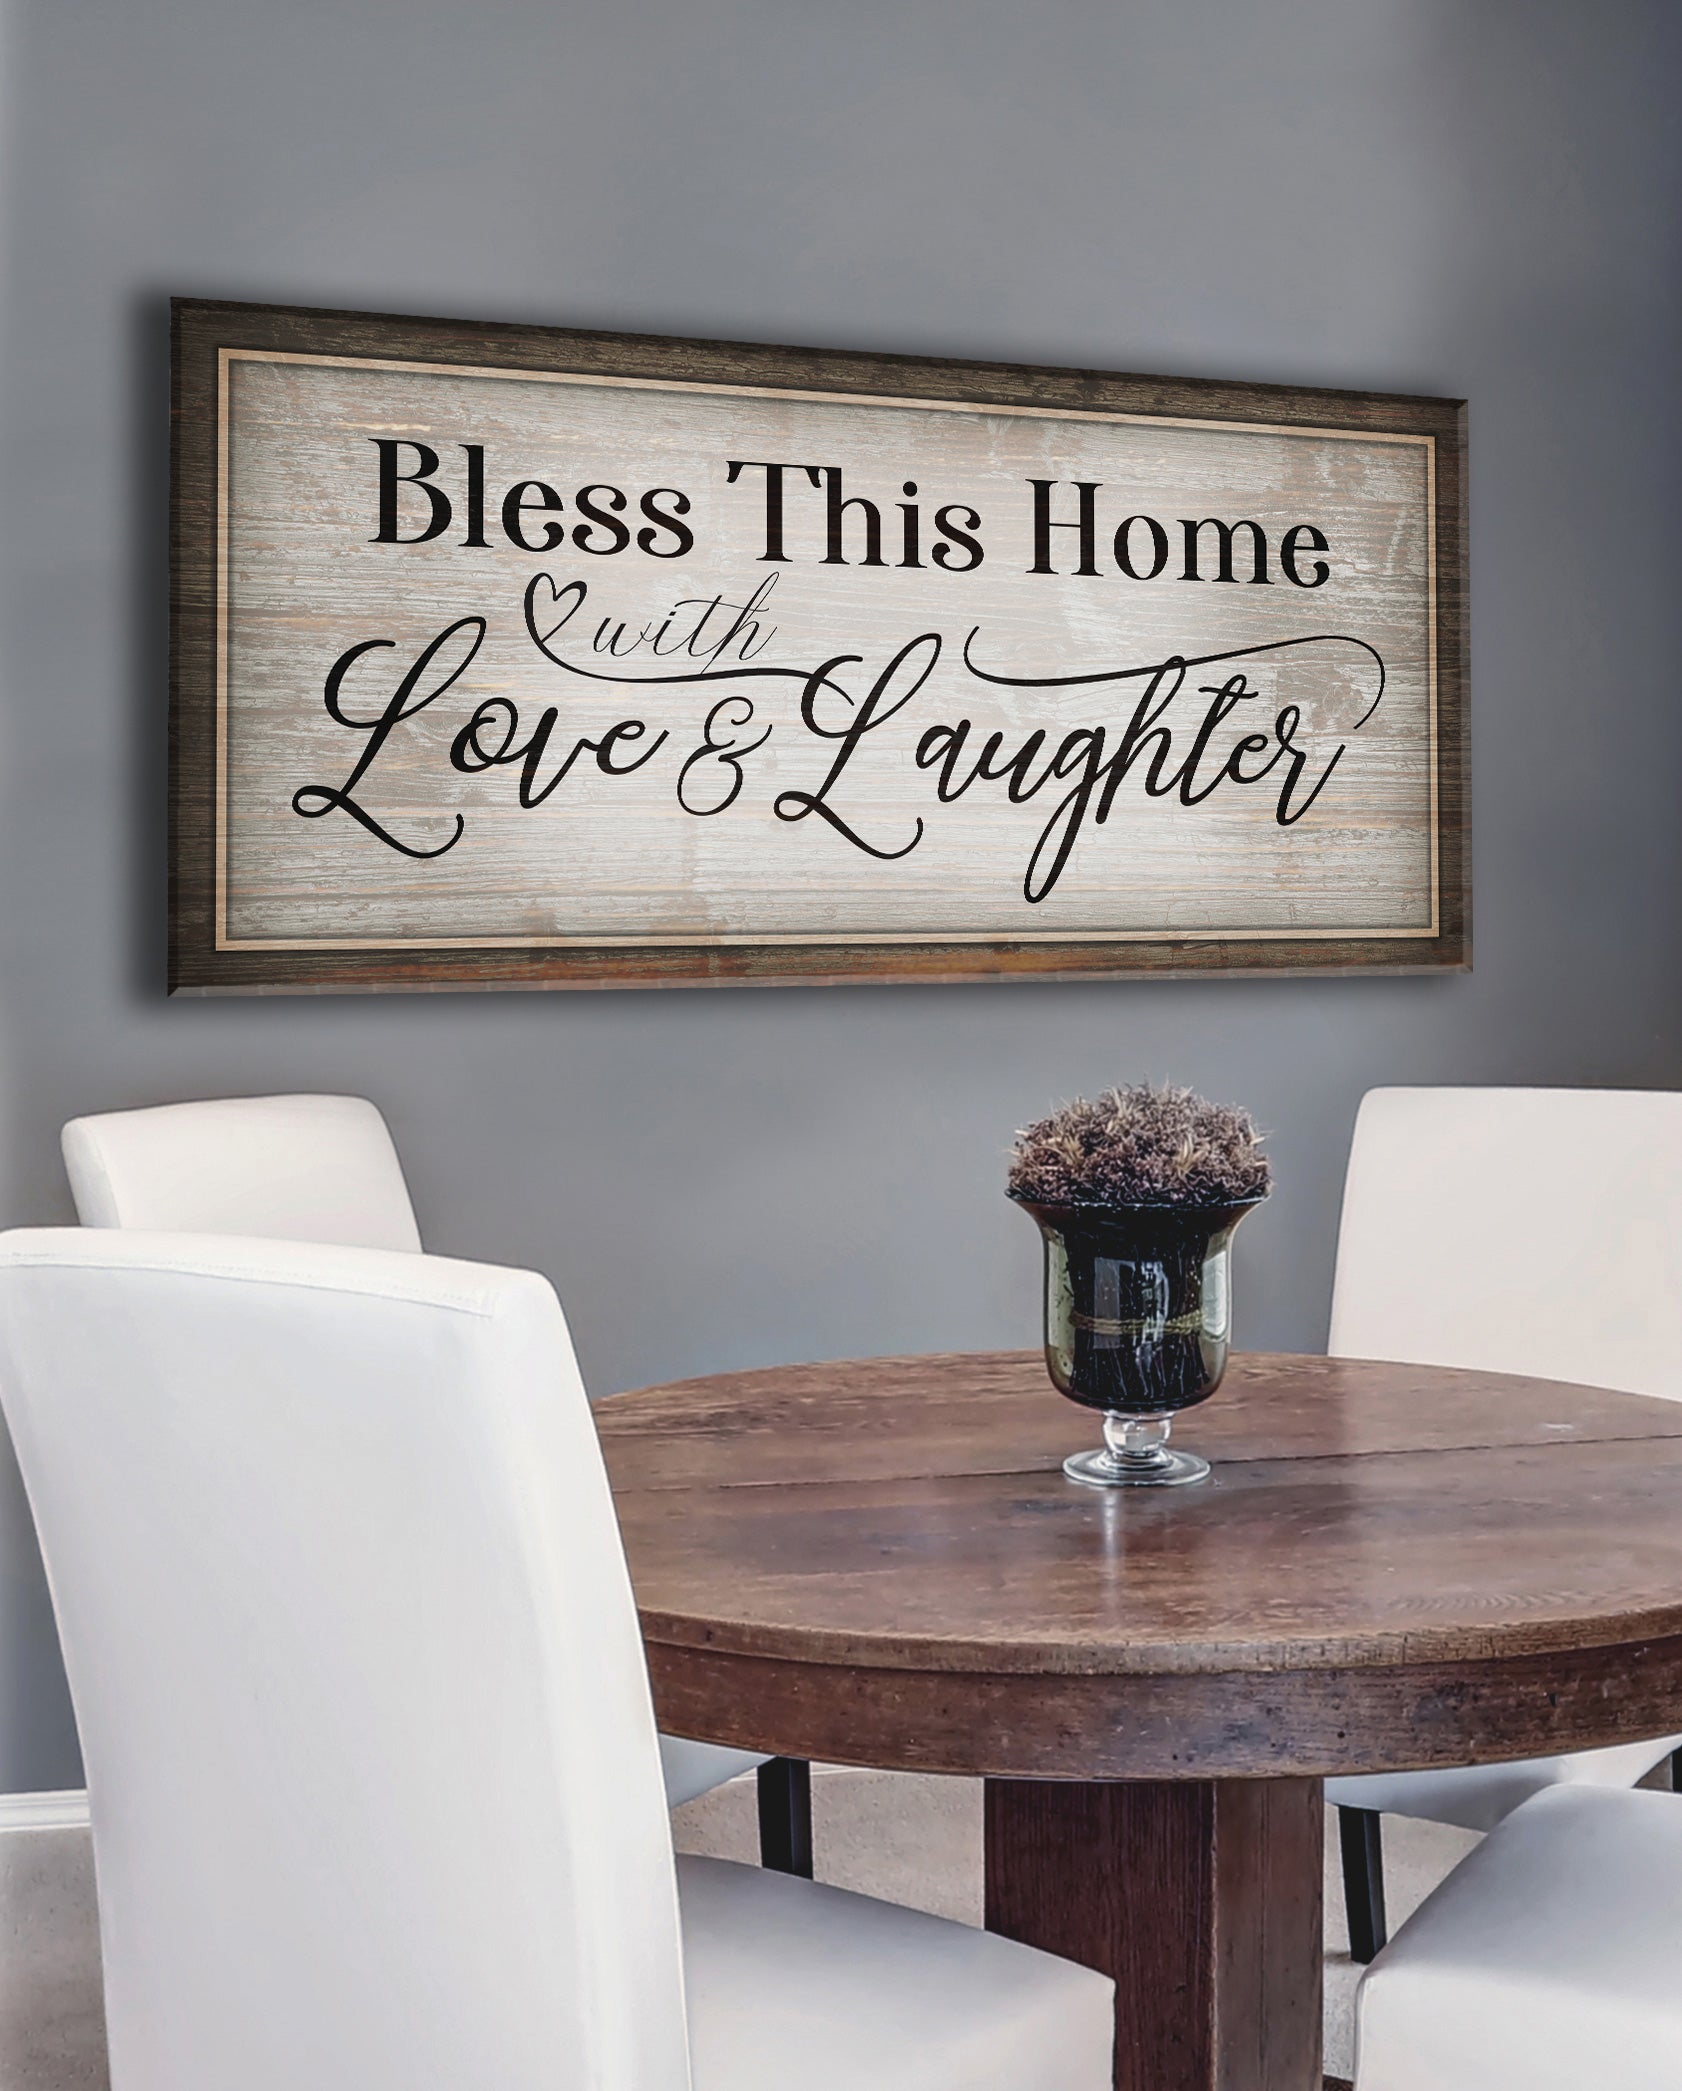 Christian Wall Art: Bless This Home With Love & Laughter V2 (Wood Frame Ready To Hang)